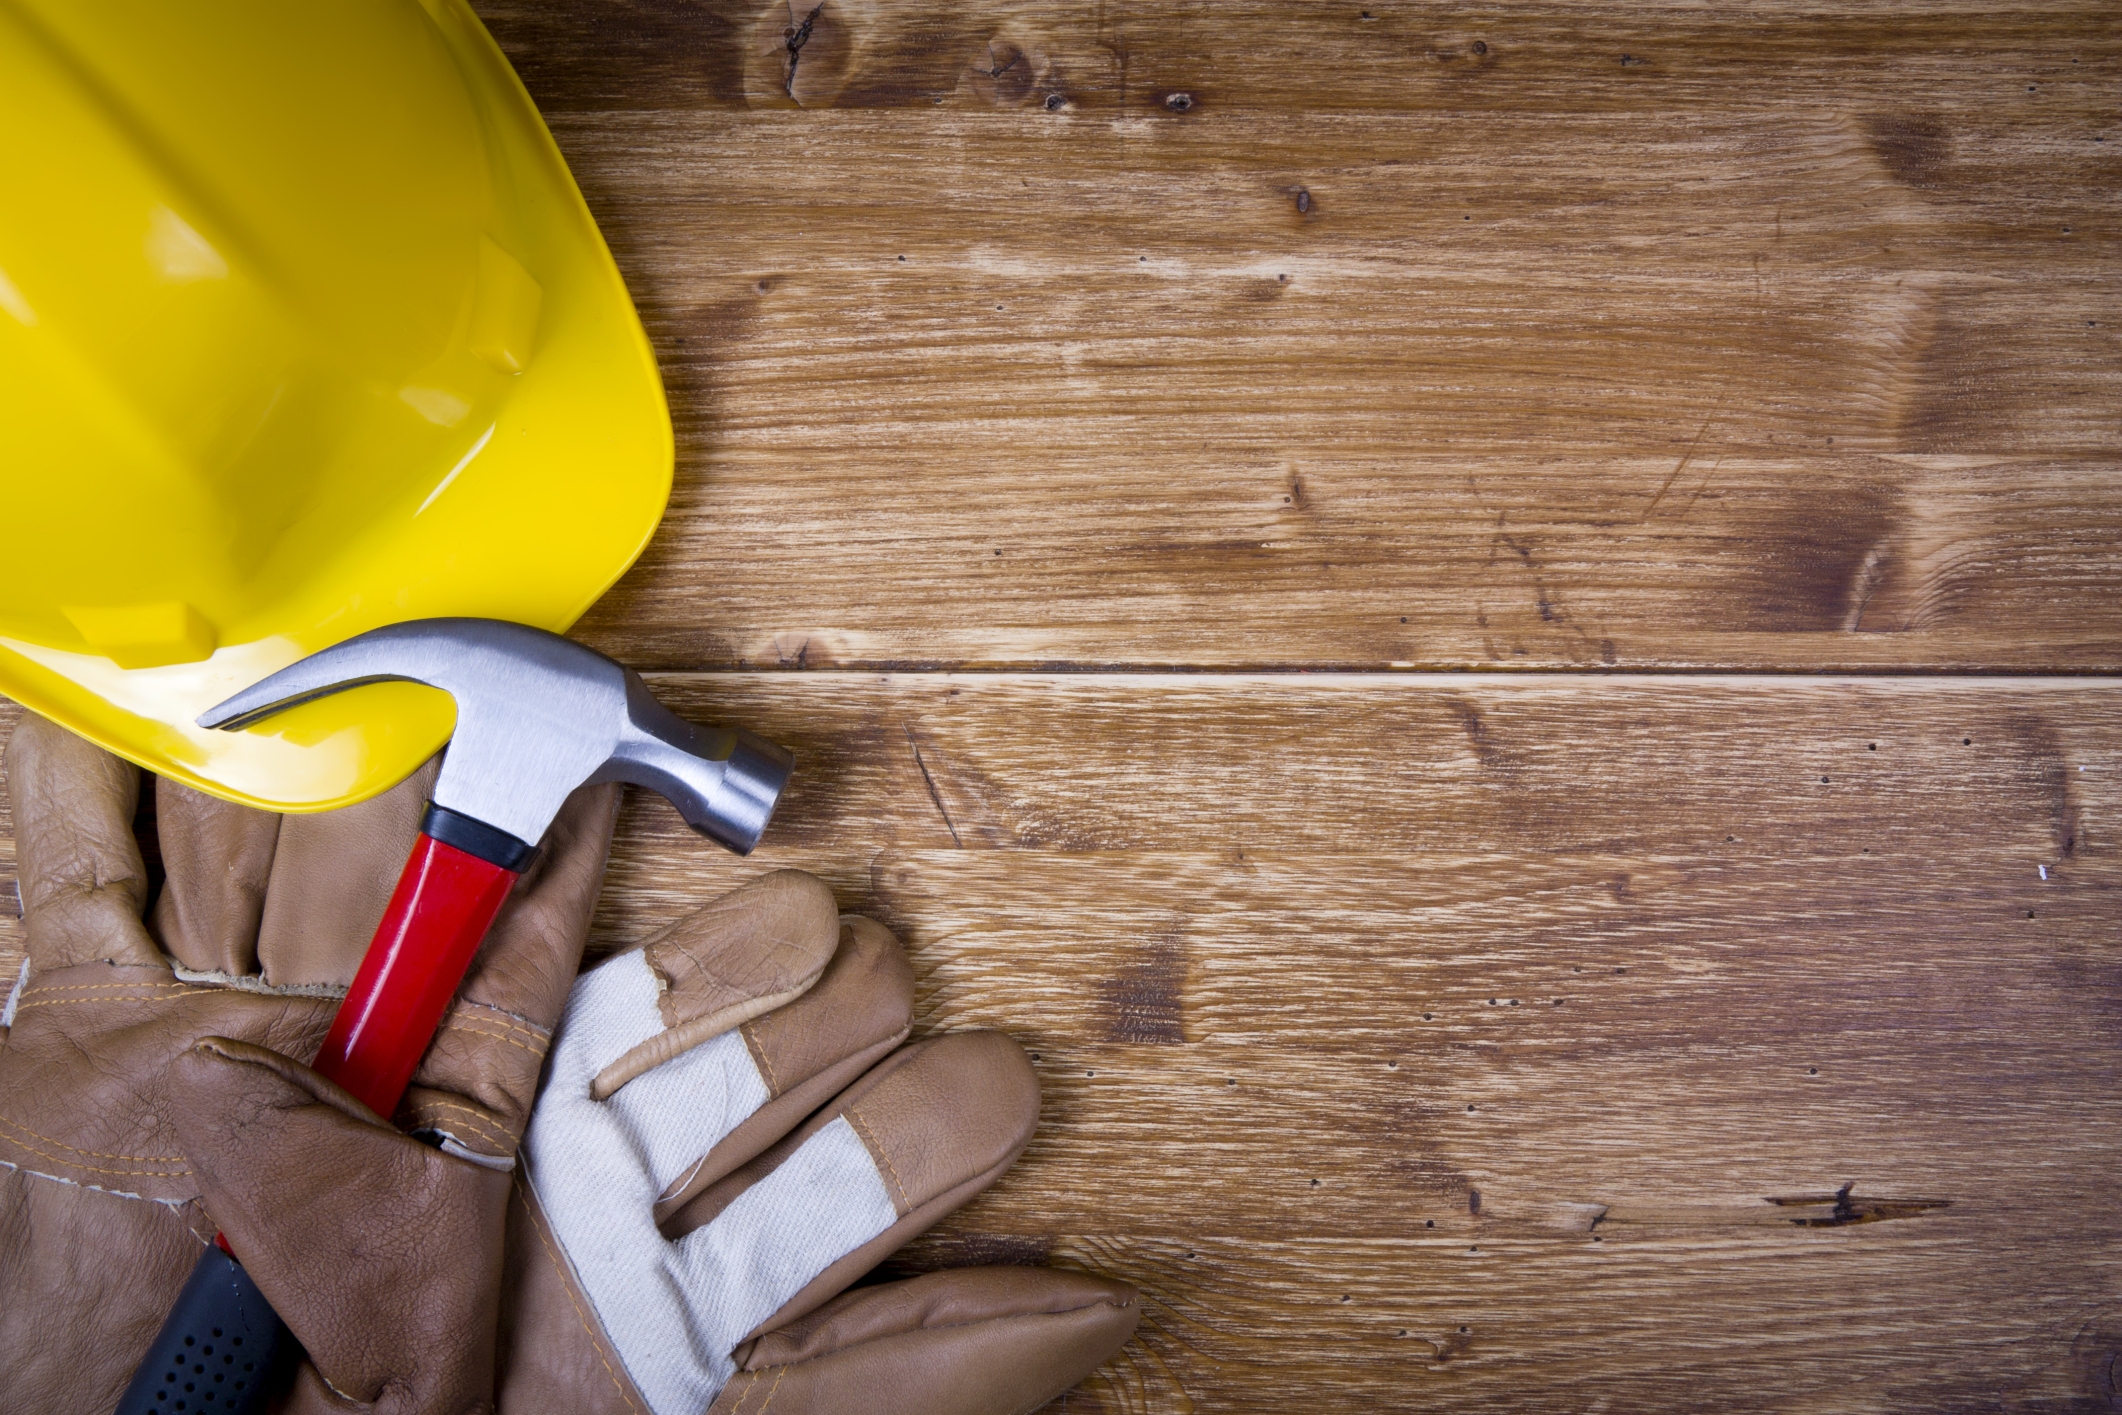 Construction hat, gloves and a hammer on a wood background